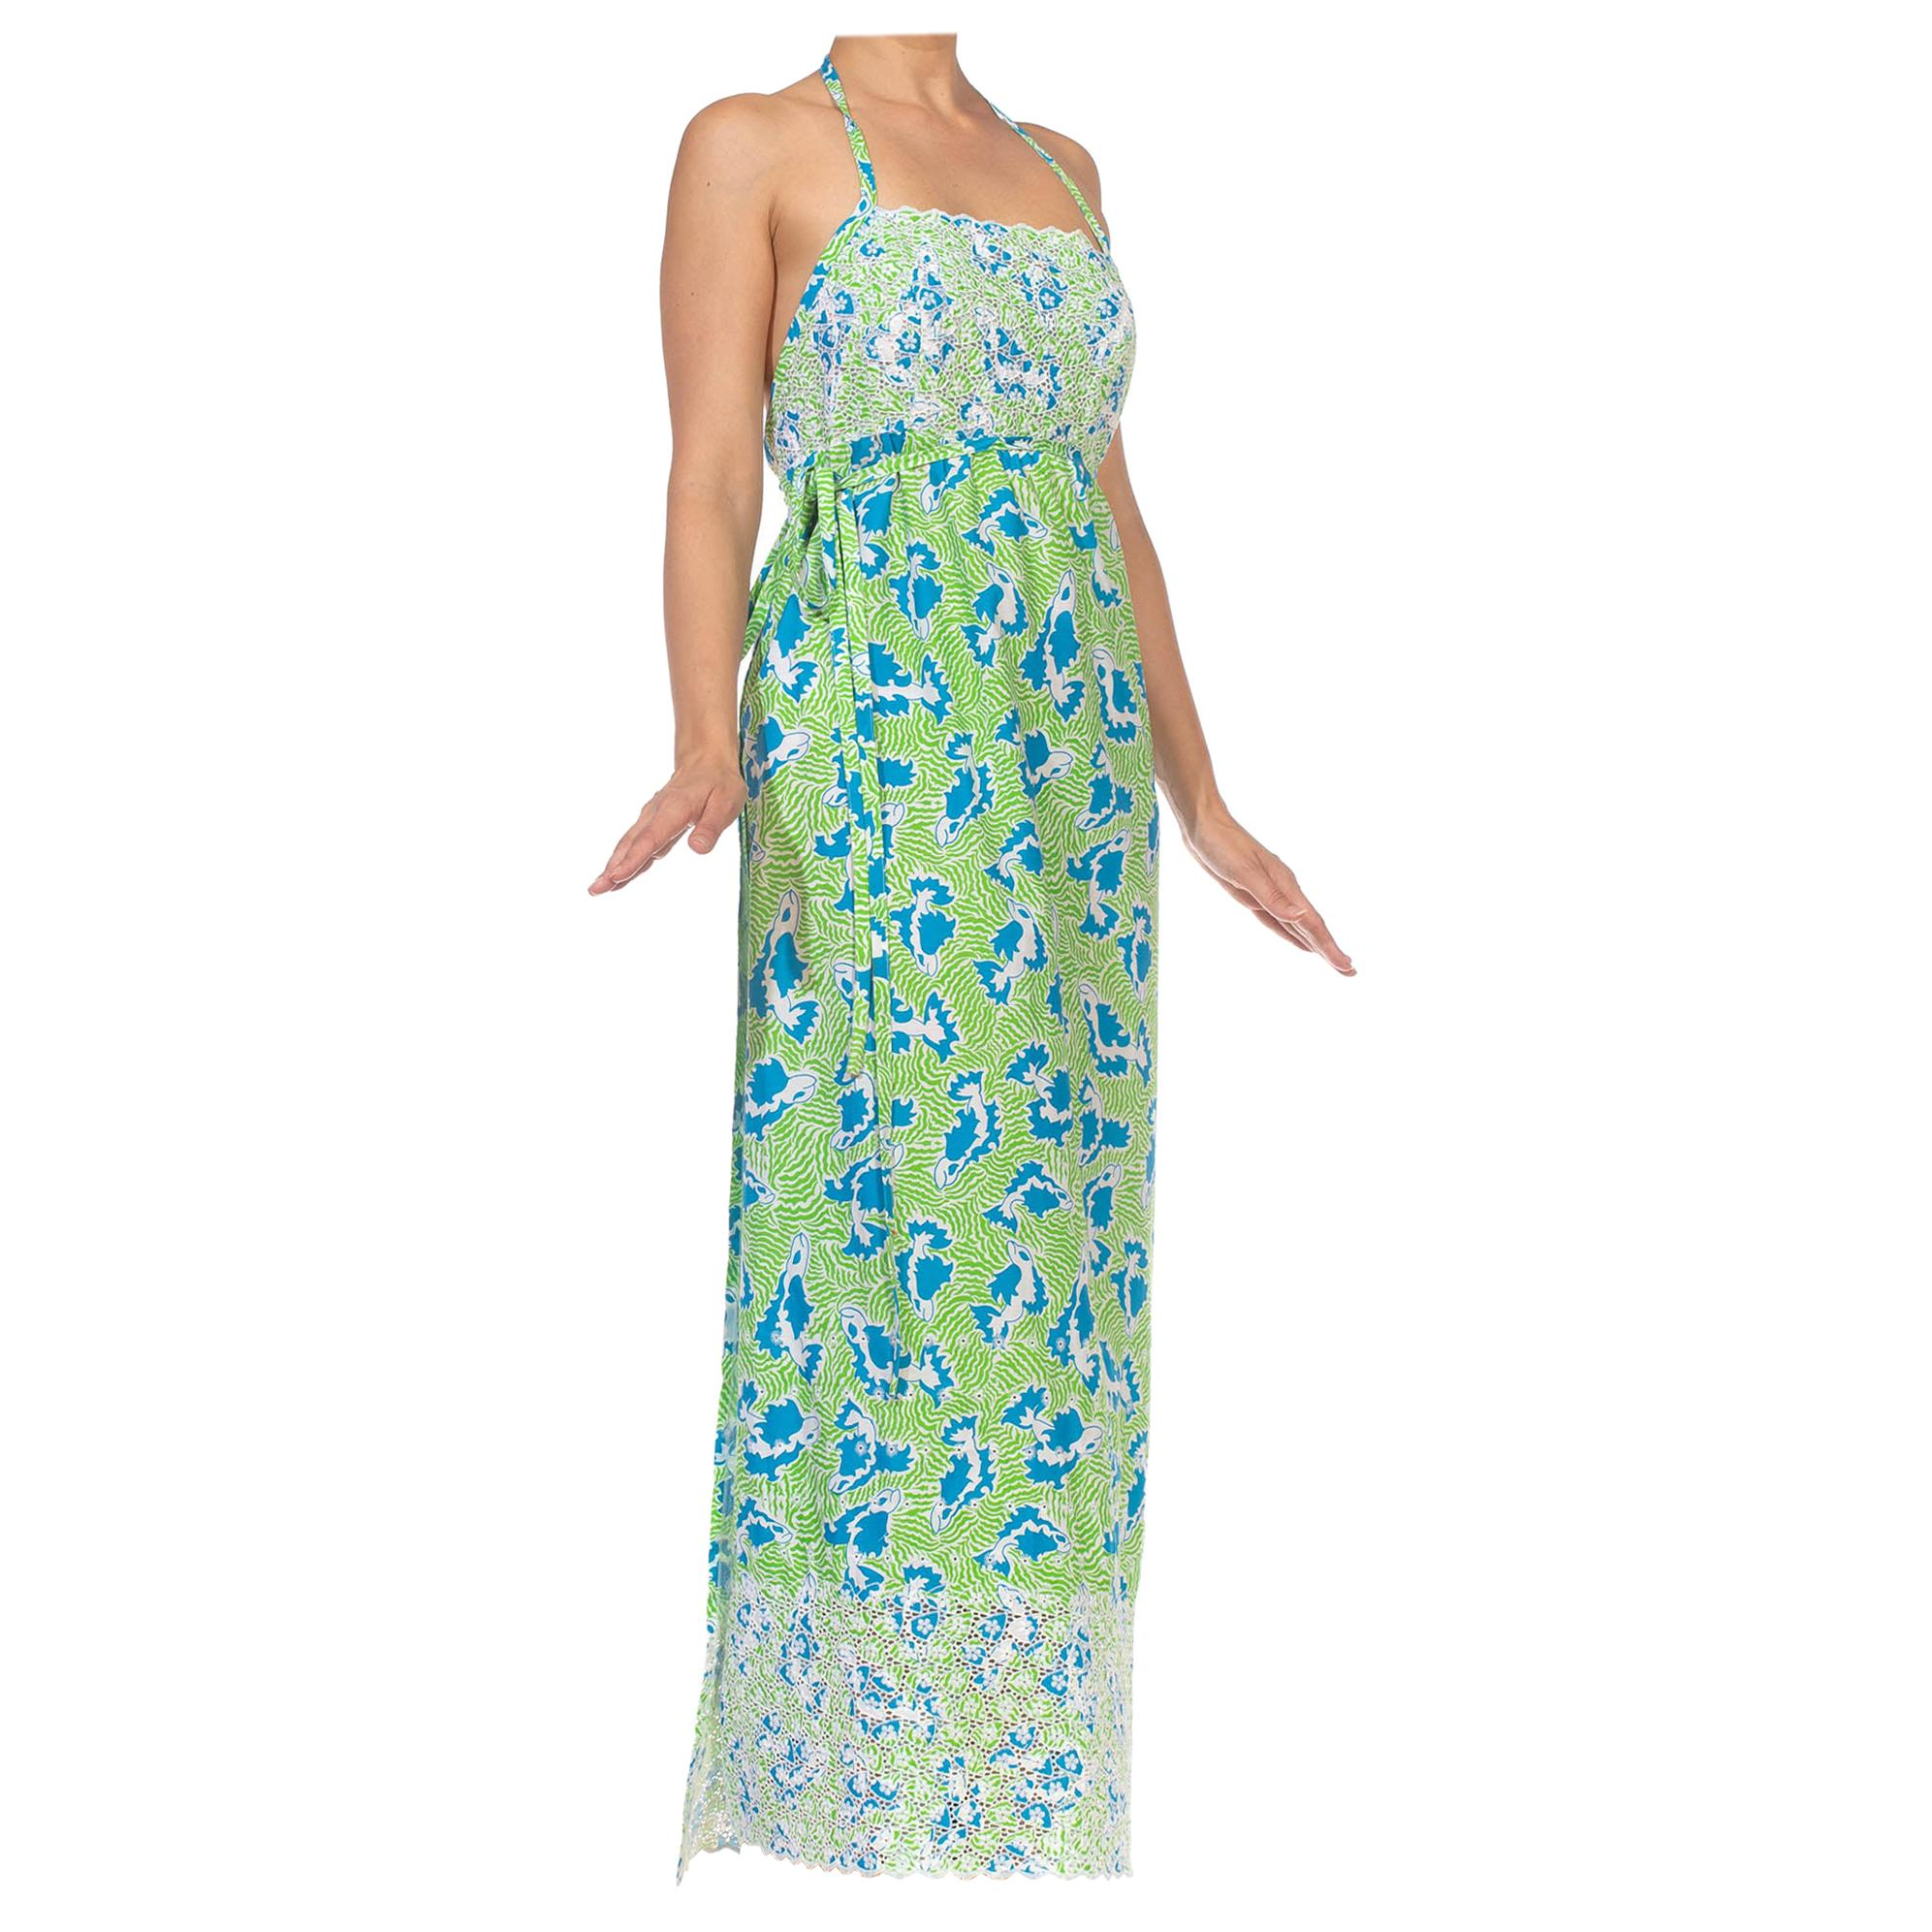 1970S LILLY PULITZER Green Blue Poly/Cotton Wrap Halter Back Dress